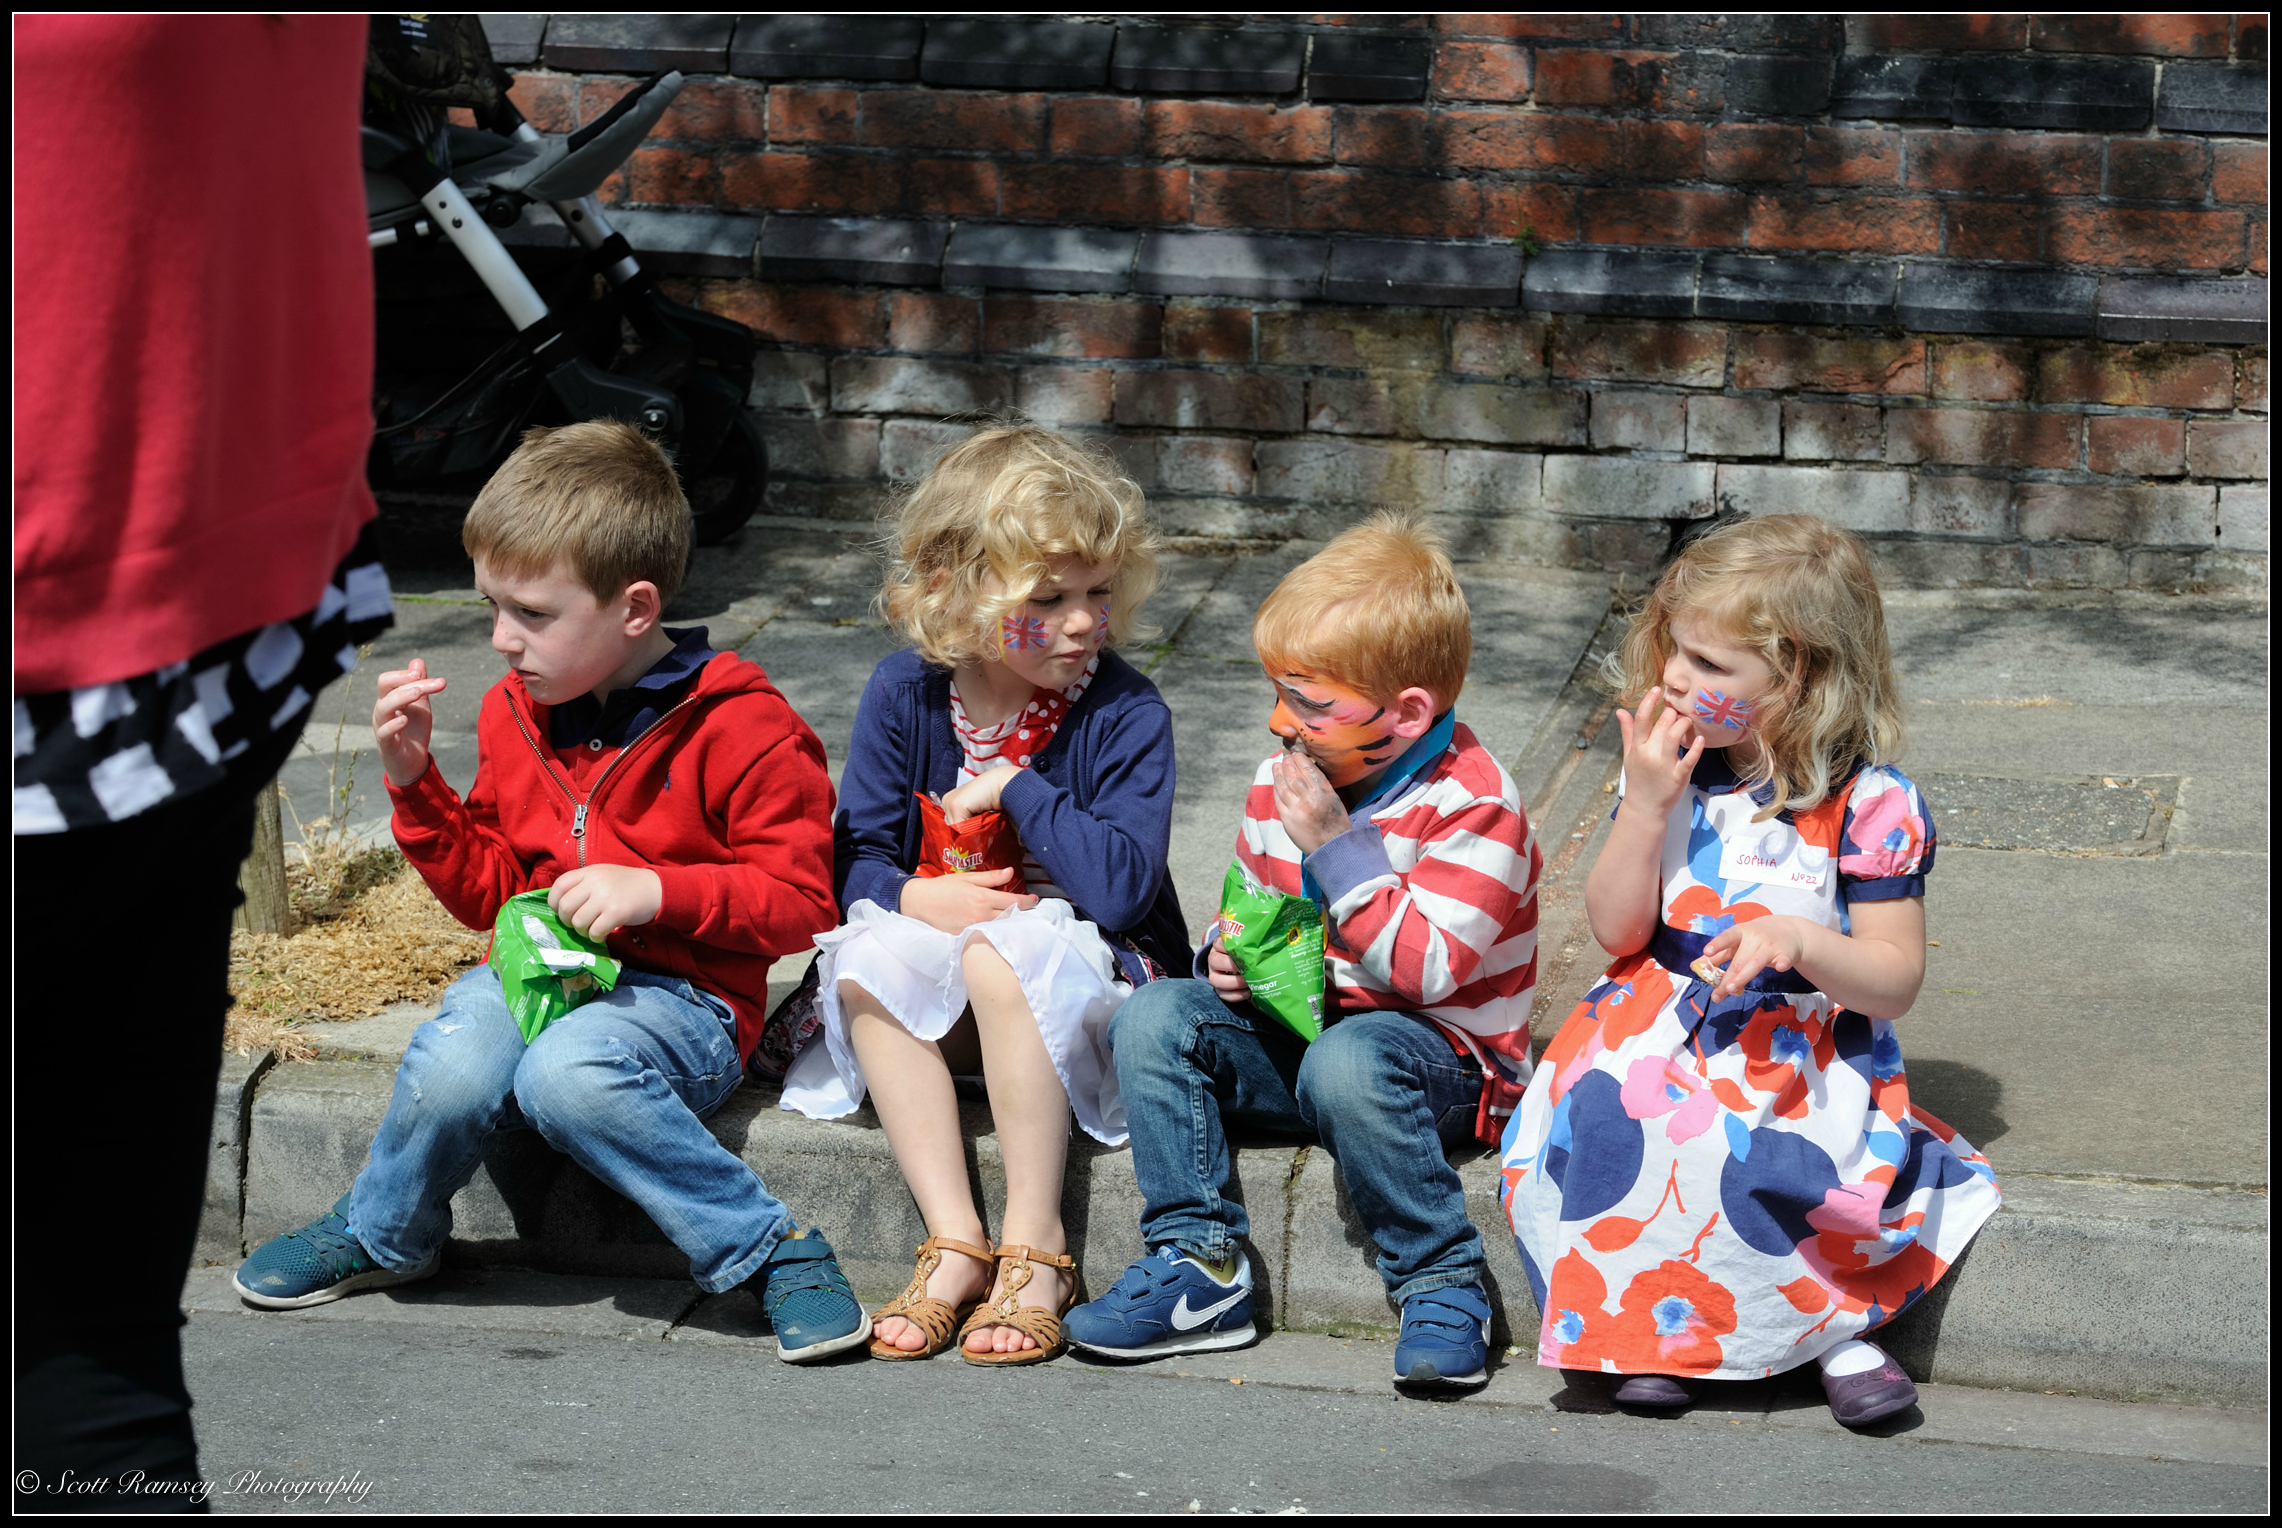 Children sit on the curb eating crisps and cakes whilst enjoying the VE Day 70th anniversary street partyin Southsea, Portsmouth. © Scott Ramsey Photography.